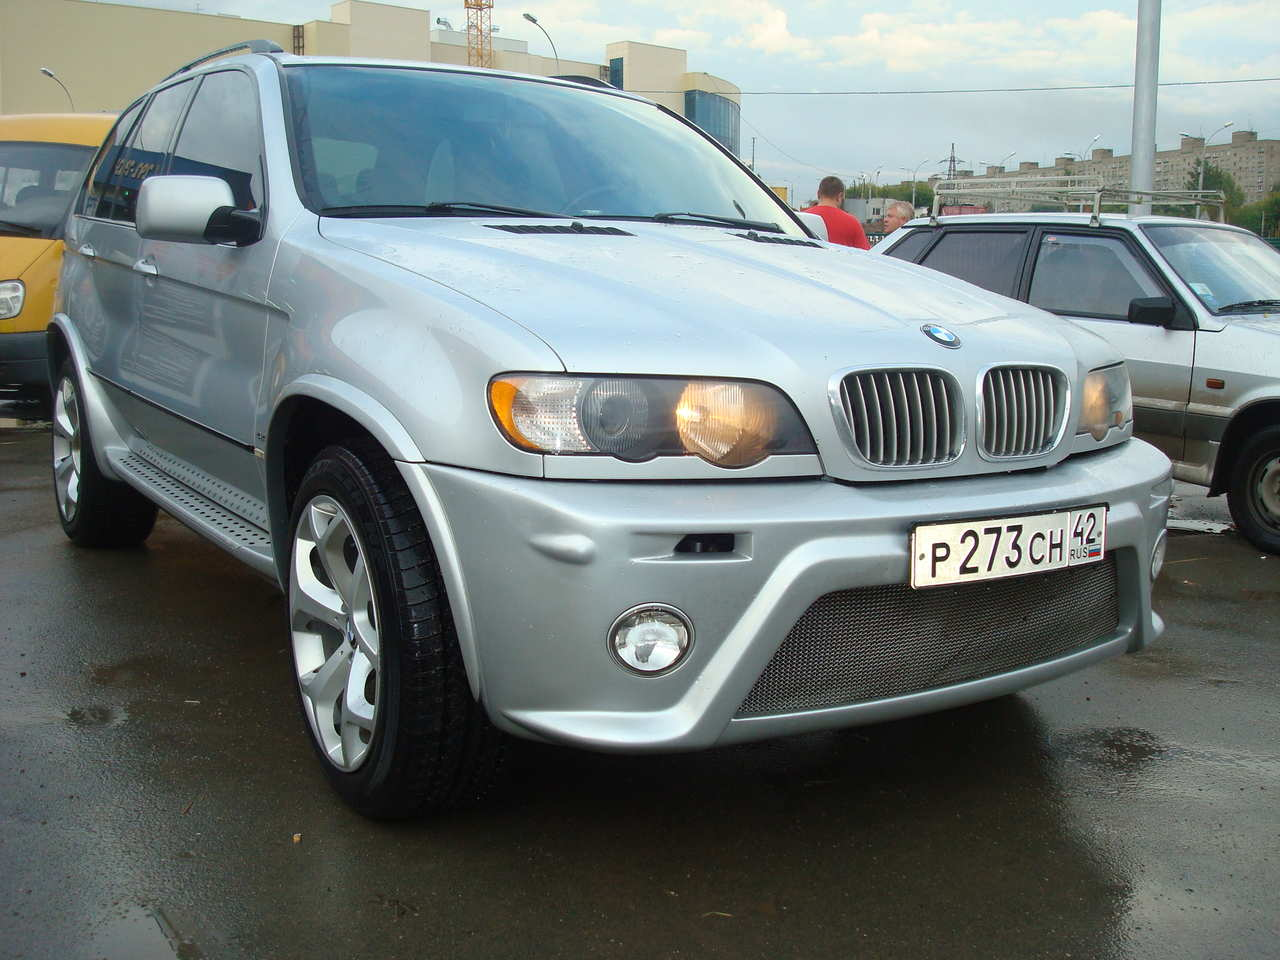 used 2002 bmw x5 photos 4400cc gasoline automatic for sale. Black Bedroom Furniture Sets. Home Design Ideas